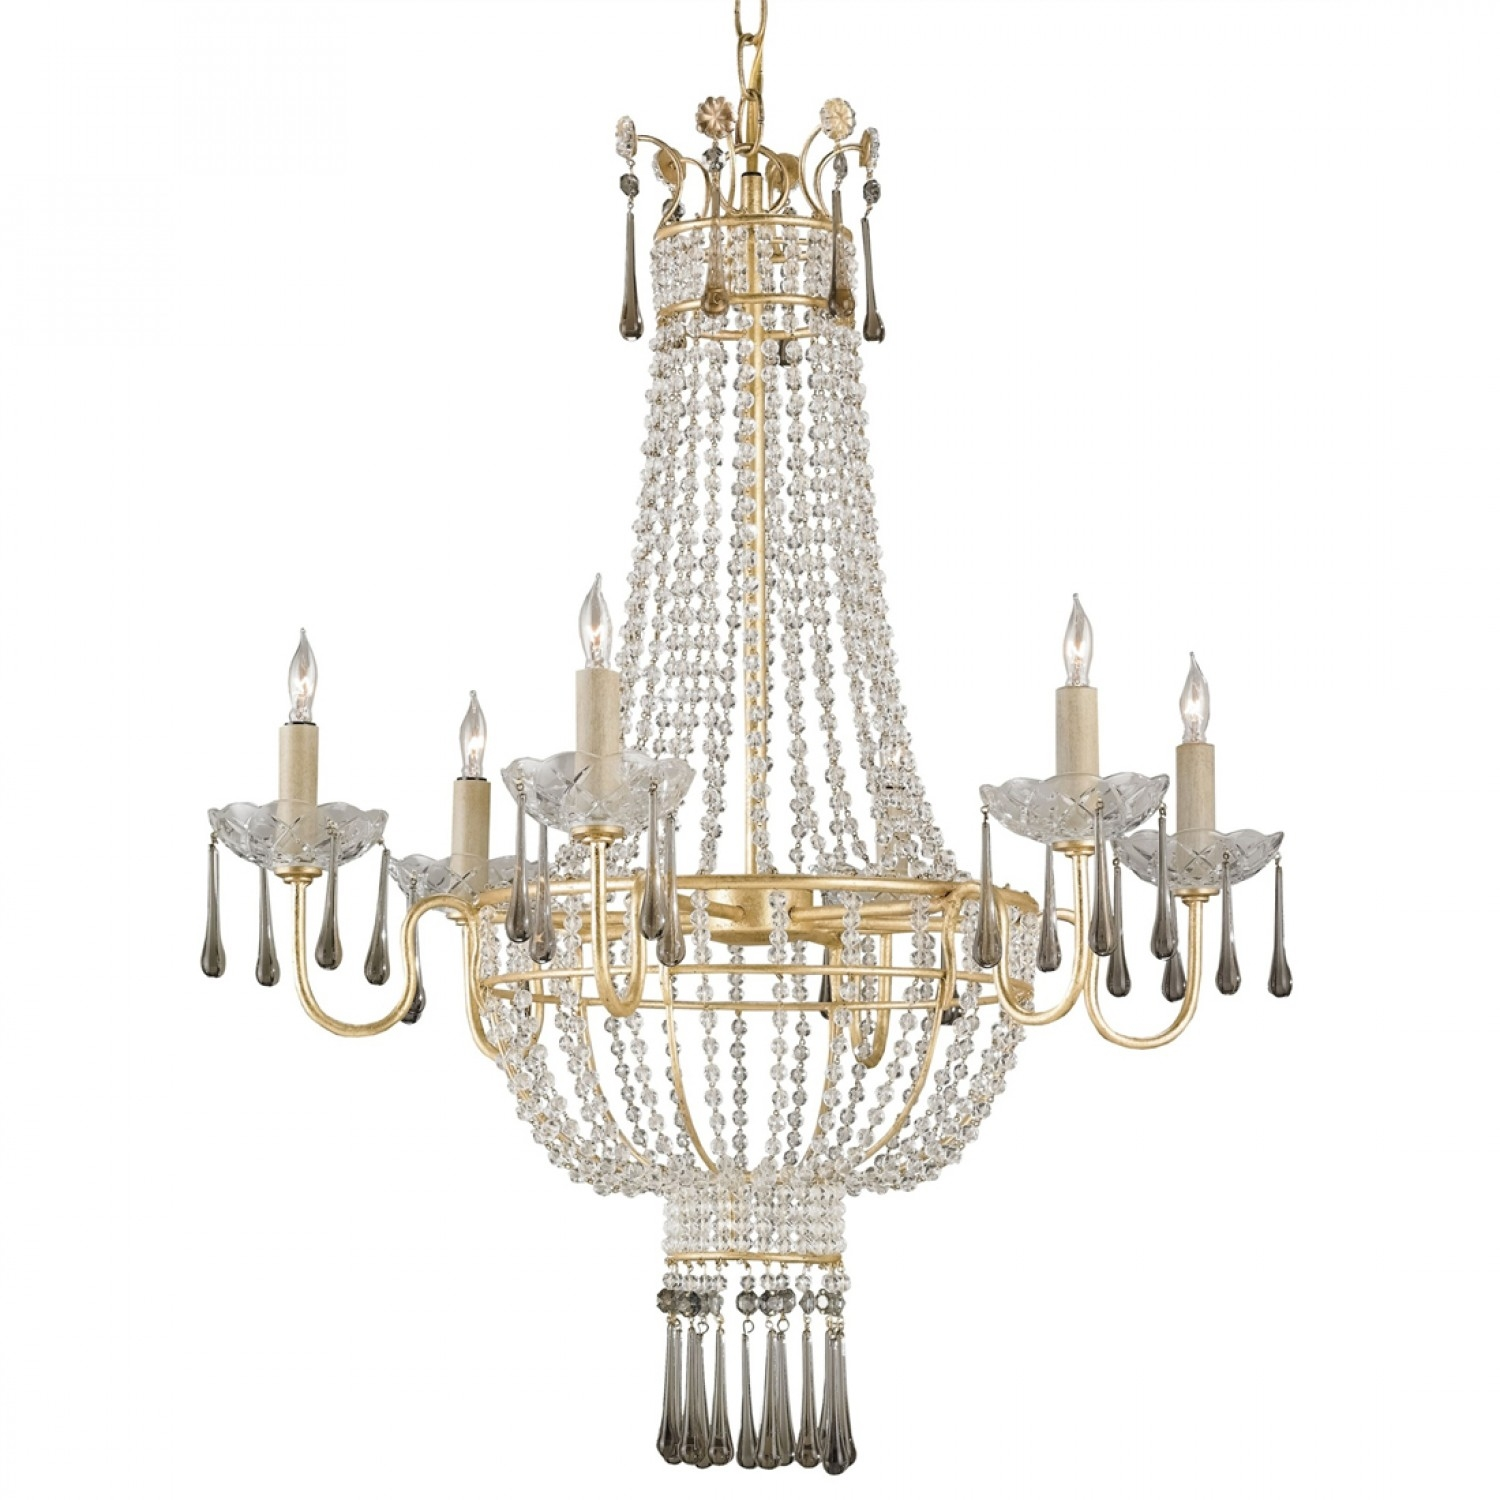 Furniture Beautiful Chandeliers Target For Lighting And Ceiling Intended For Trendy Chandeliers (Image 6 of 11)